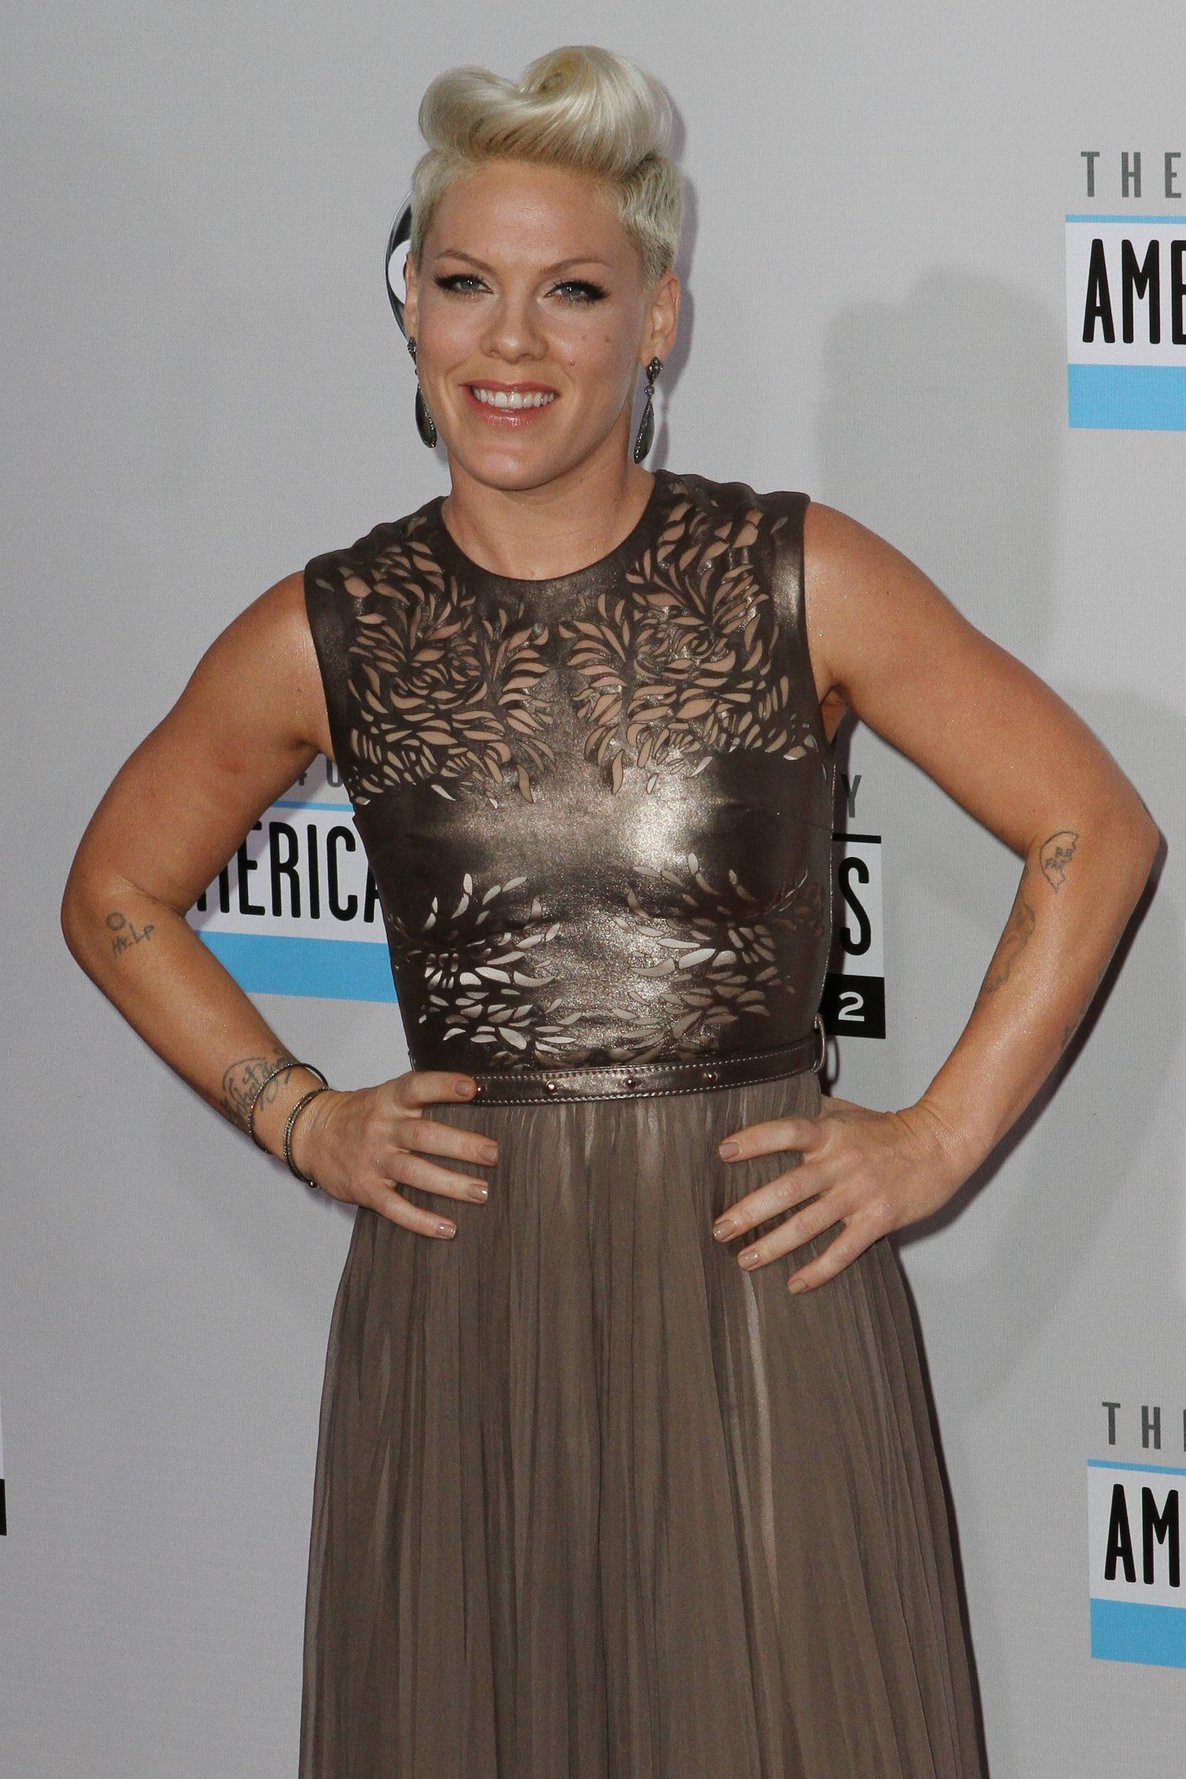 Pink American Music Awards (November 18, 2012)